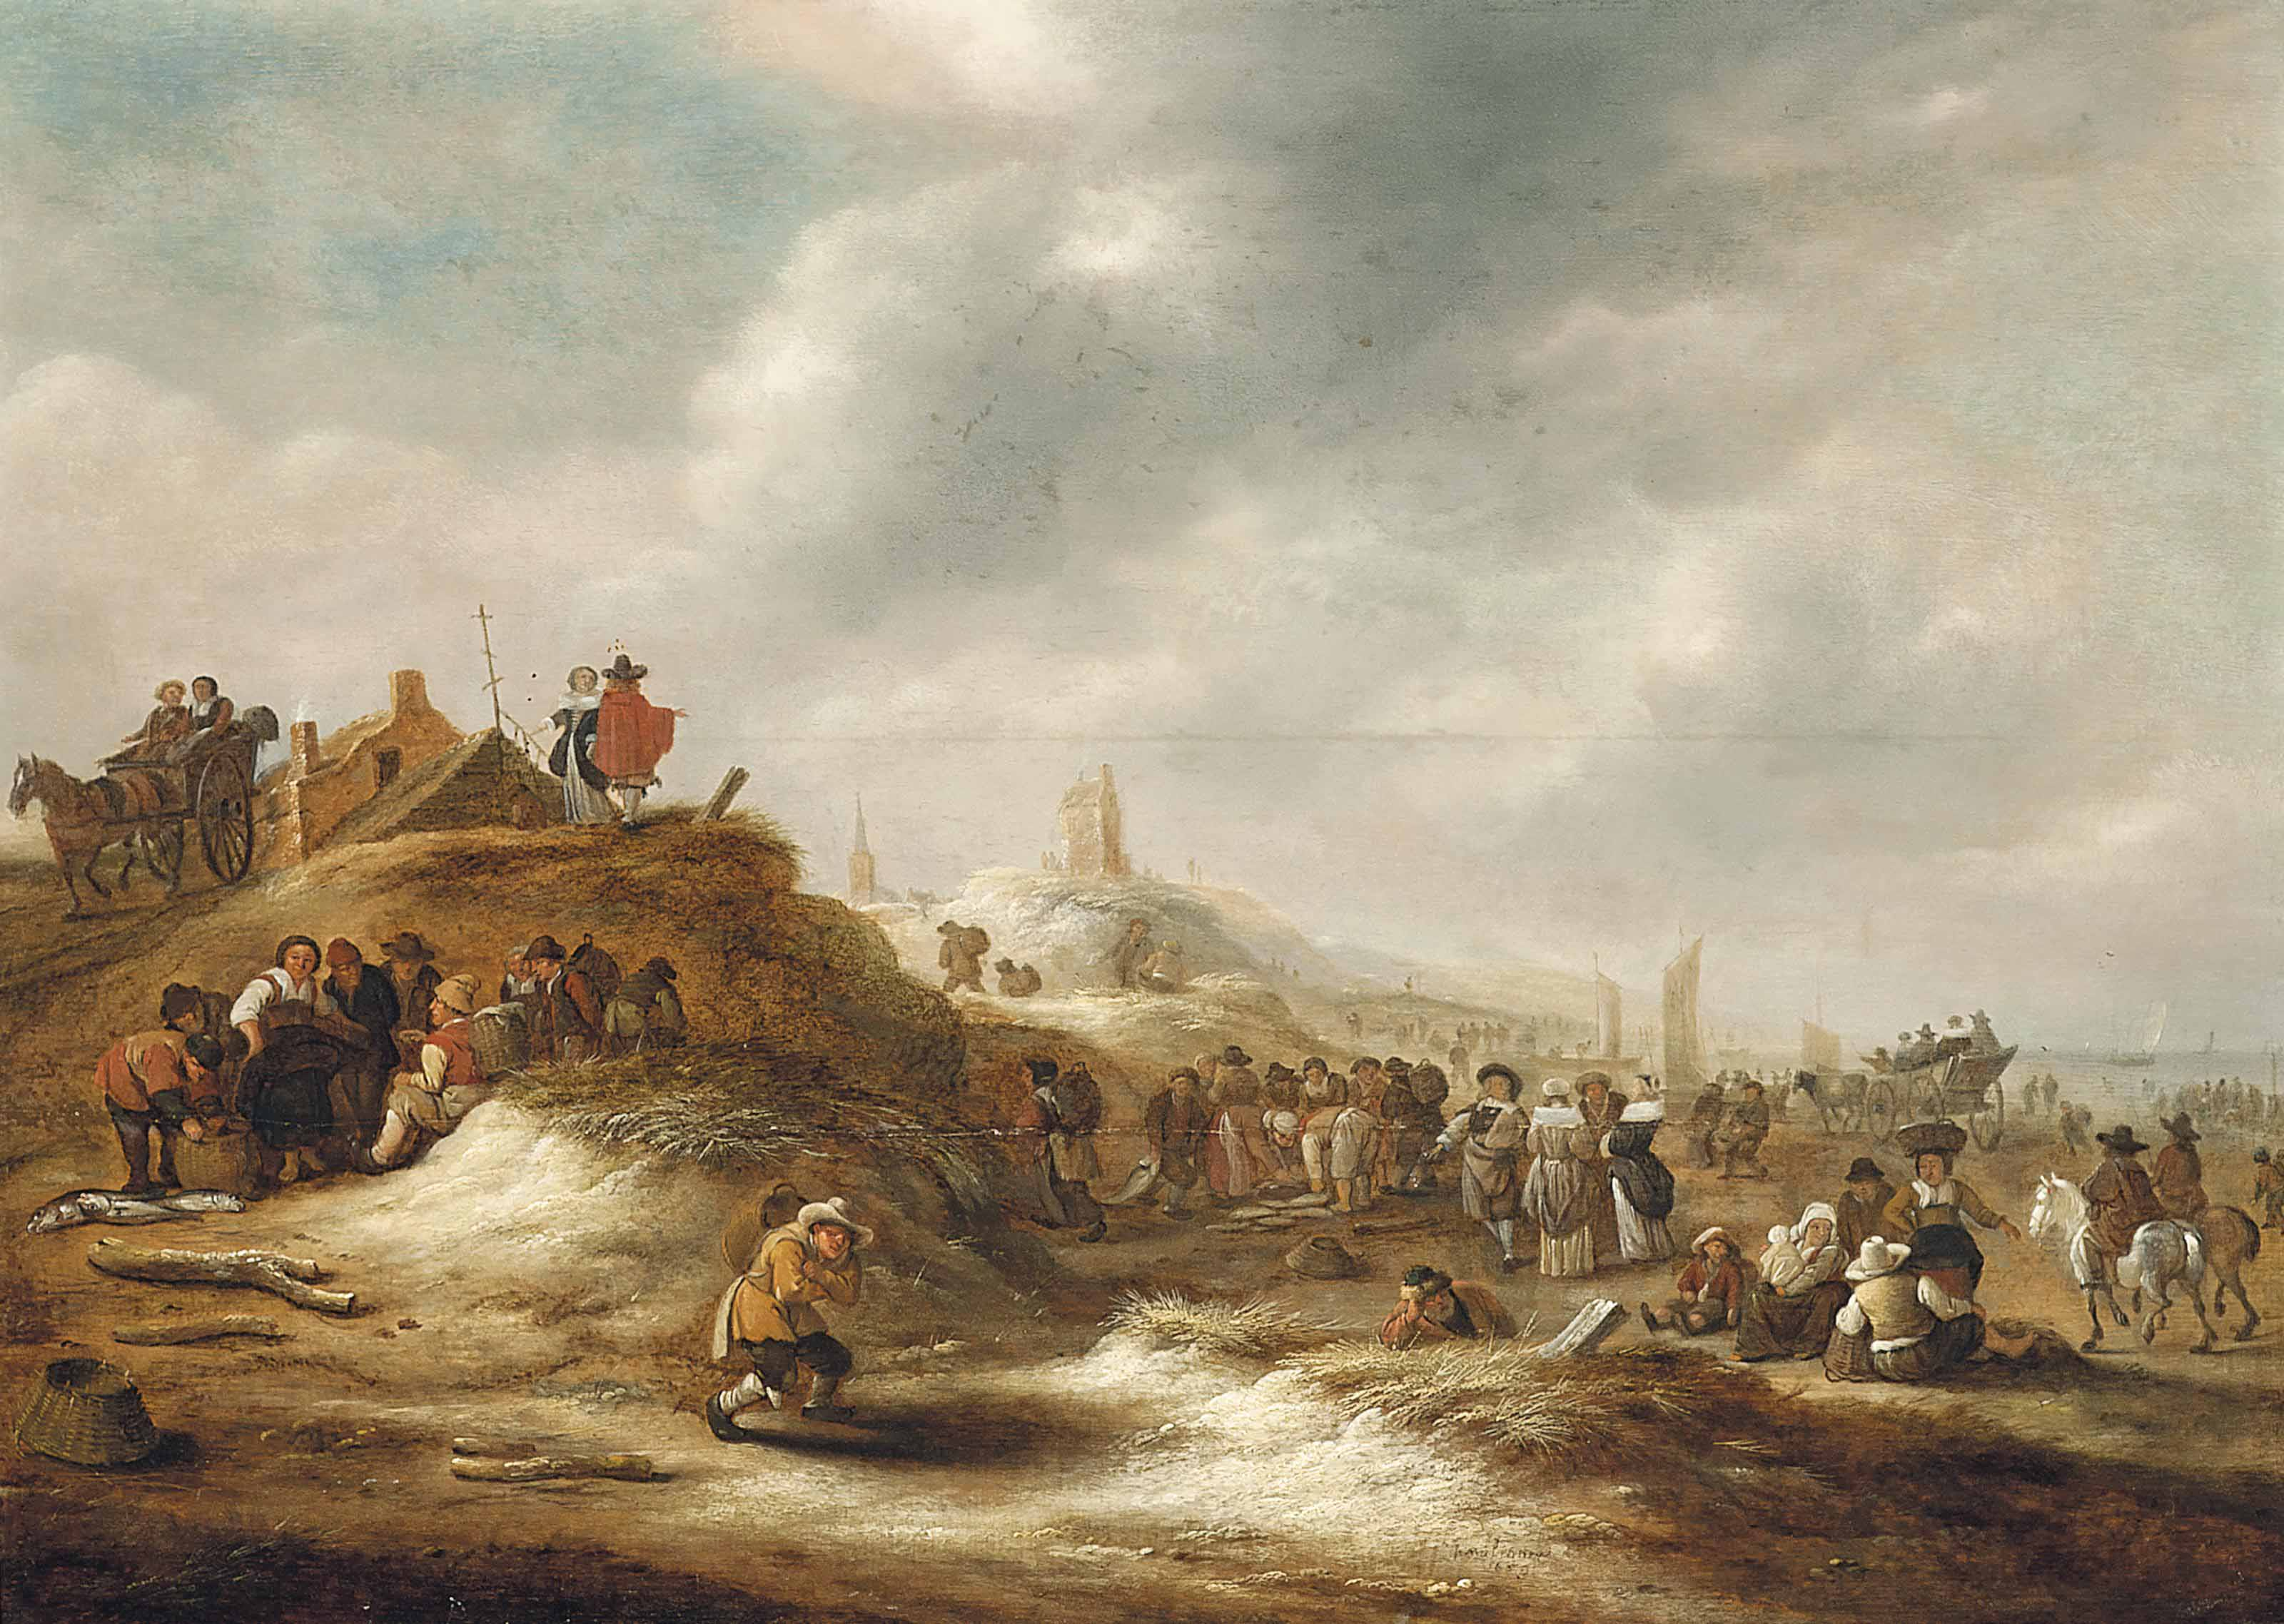 The beach at Scheveningen, with elegant figures and fishermen selling their catch